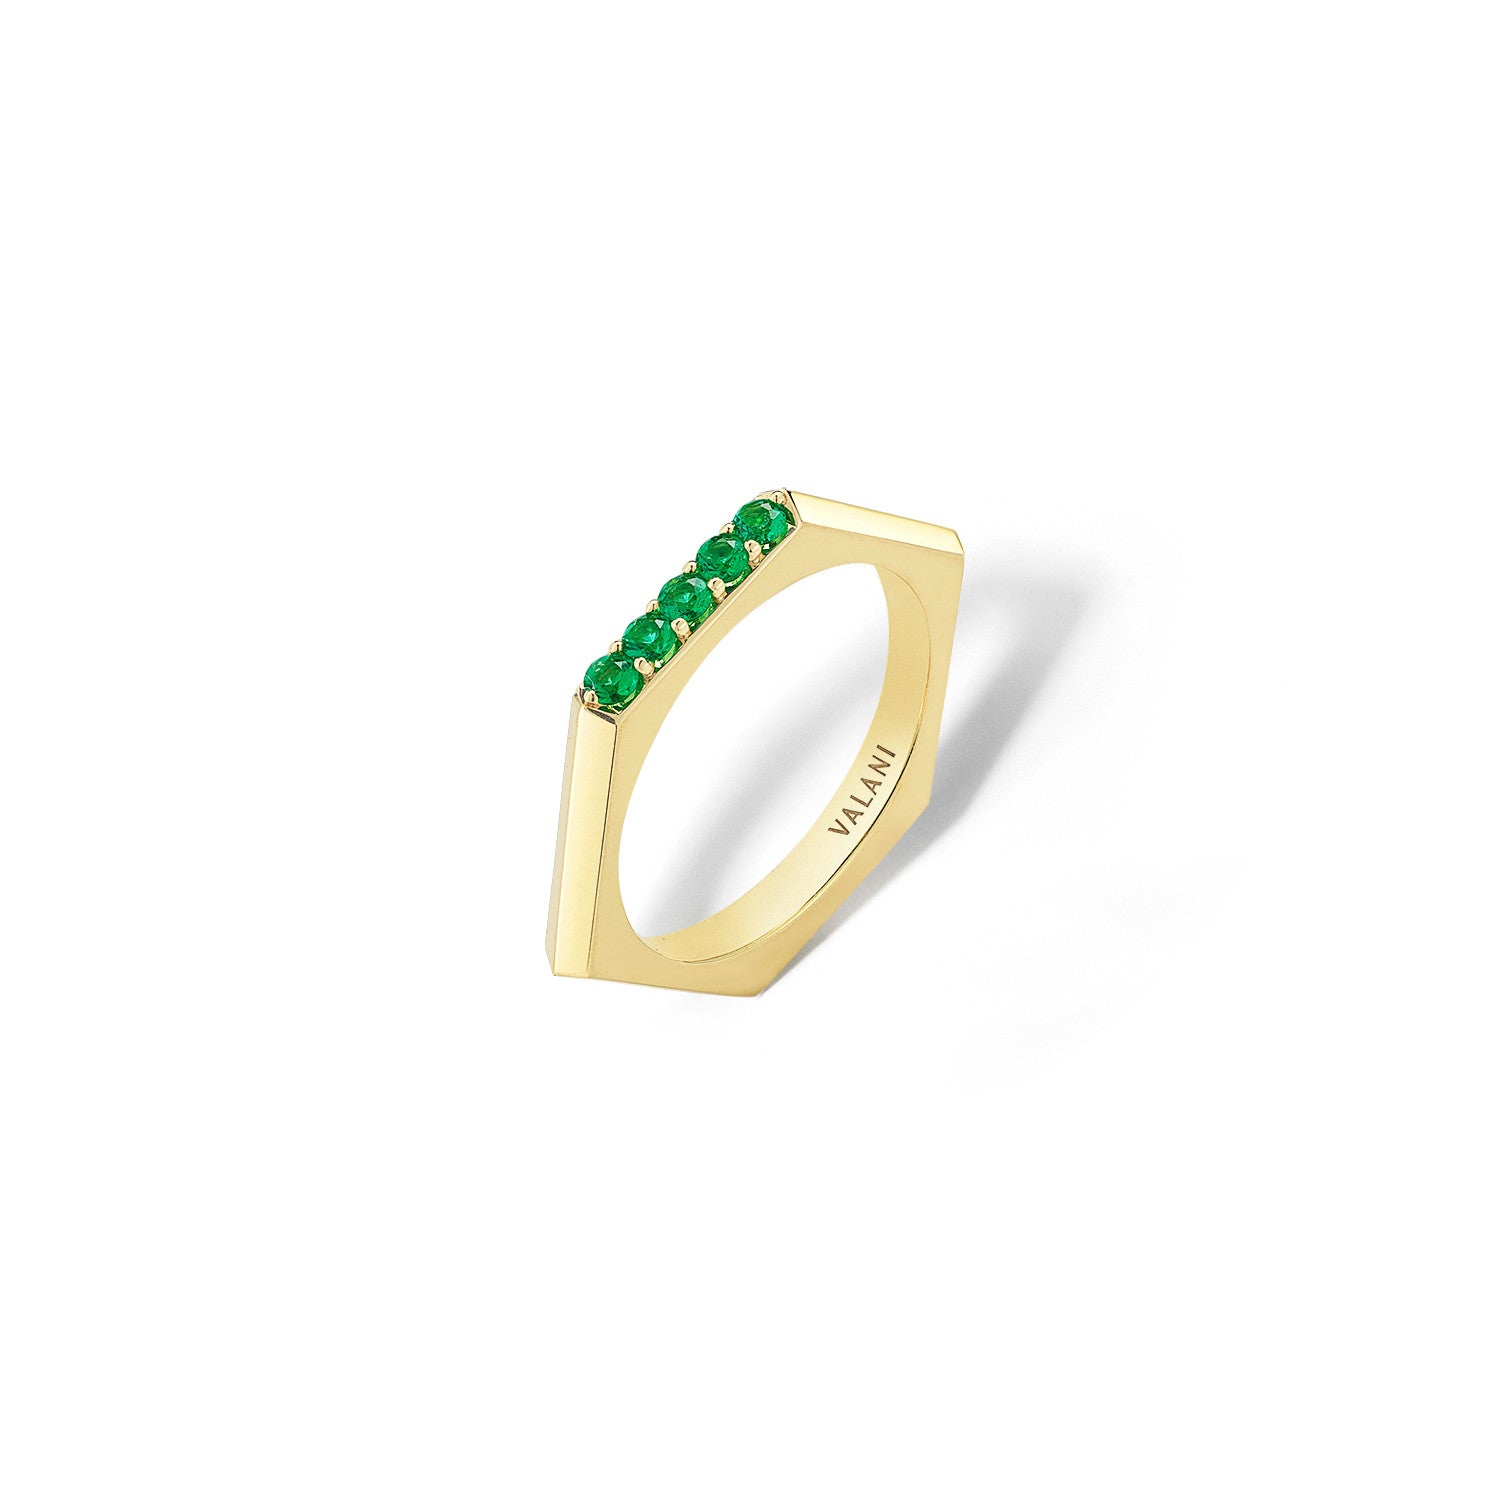 by jewelry enhance look your video elegant ring jewellery emerald bingefashion upoepjf